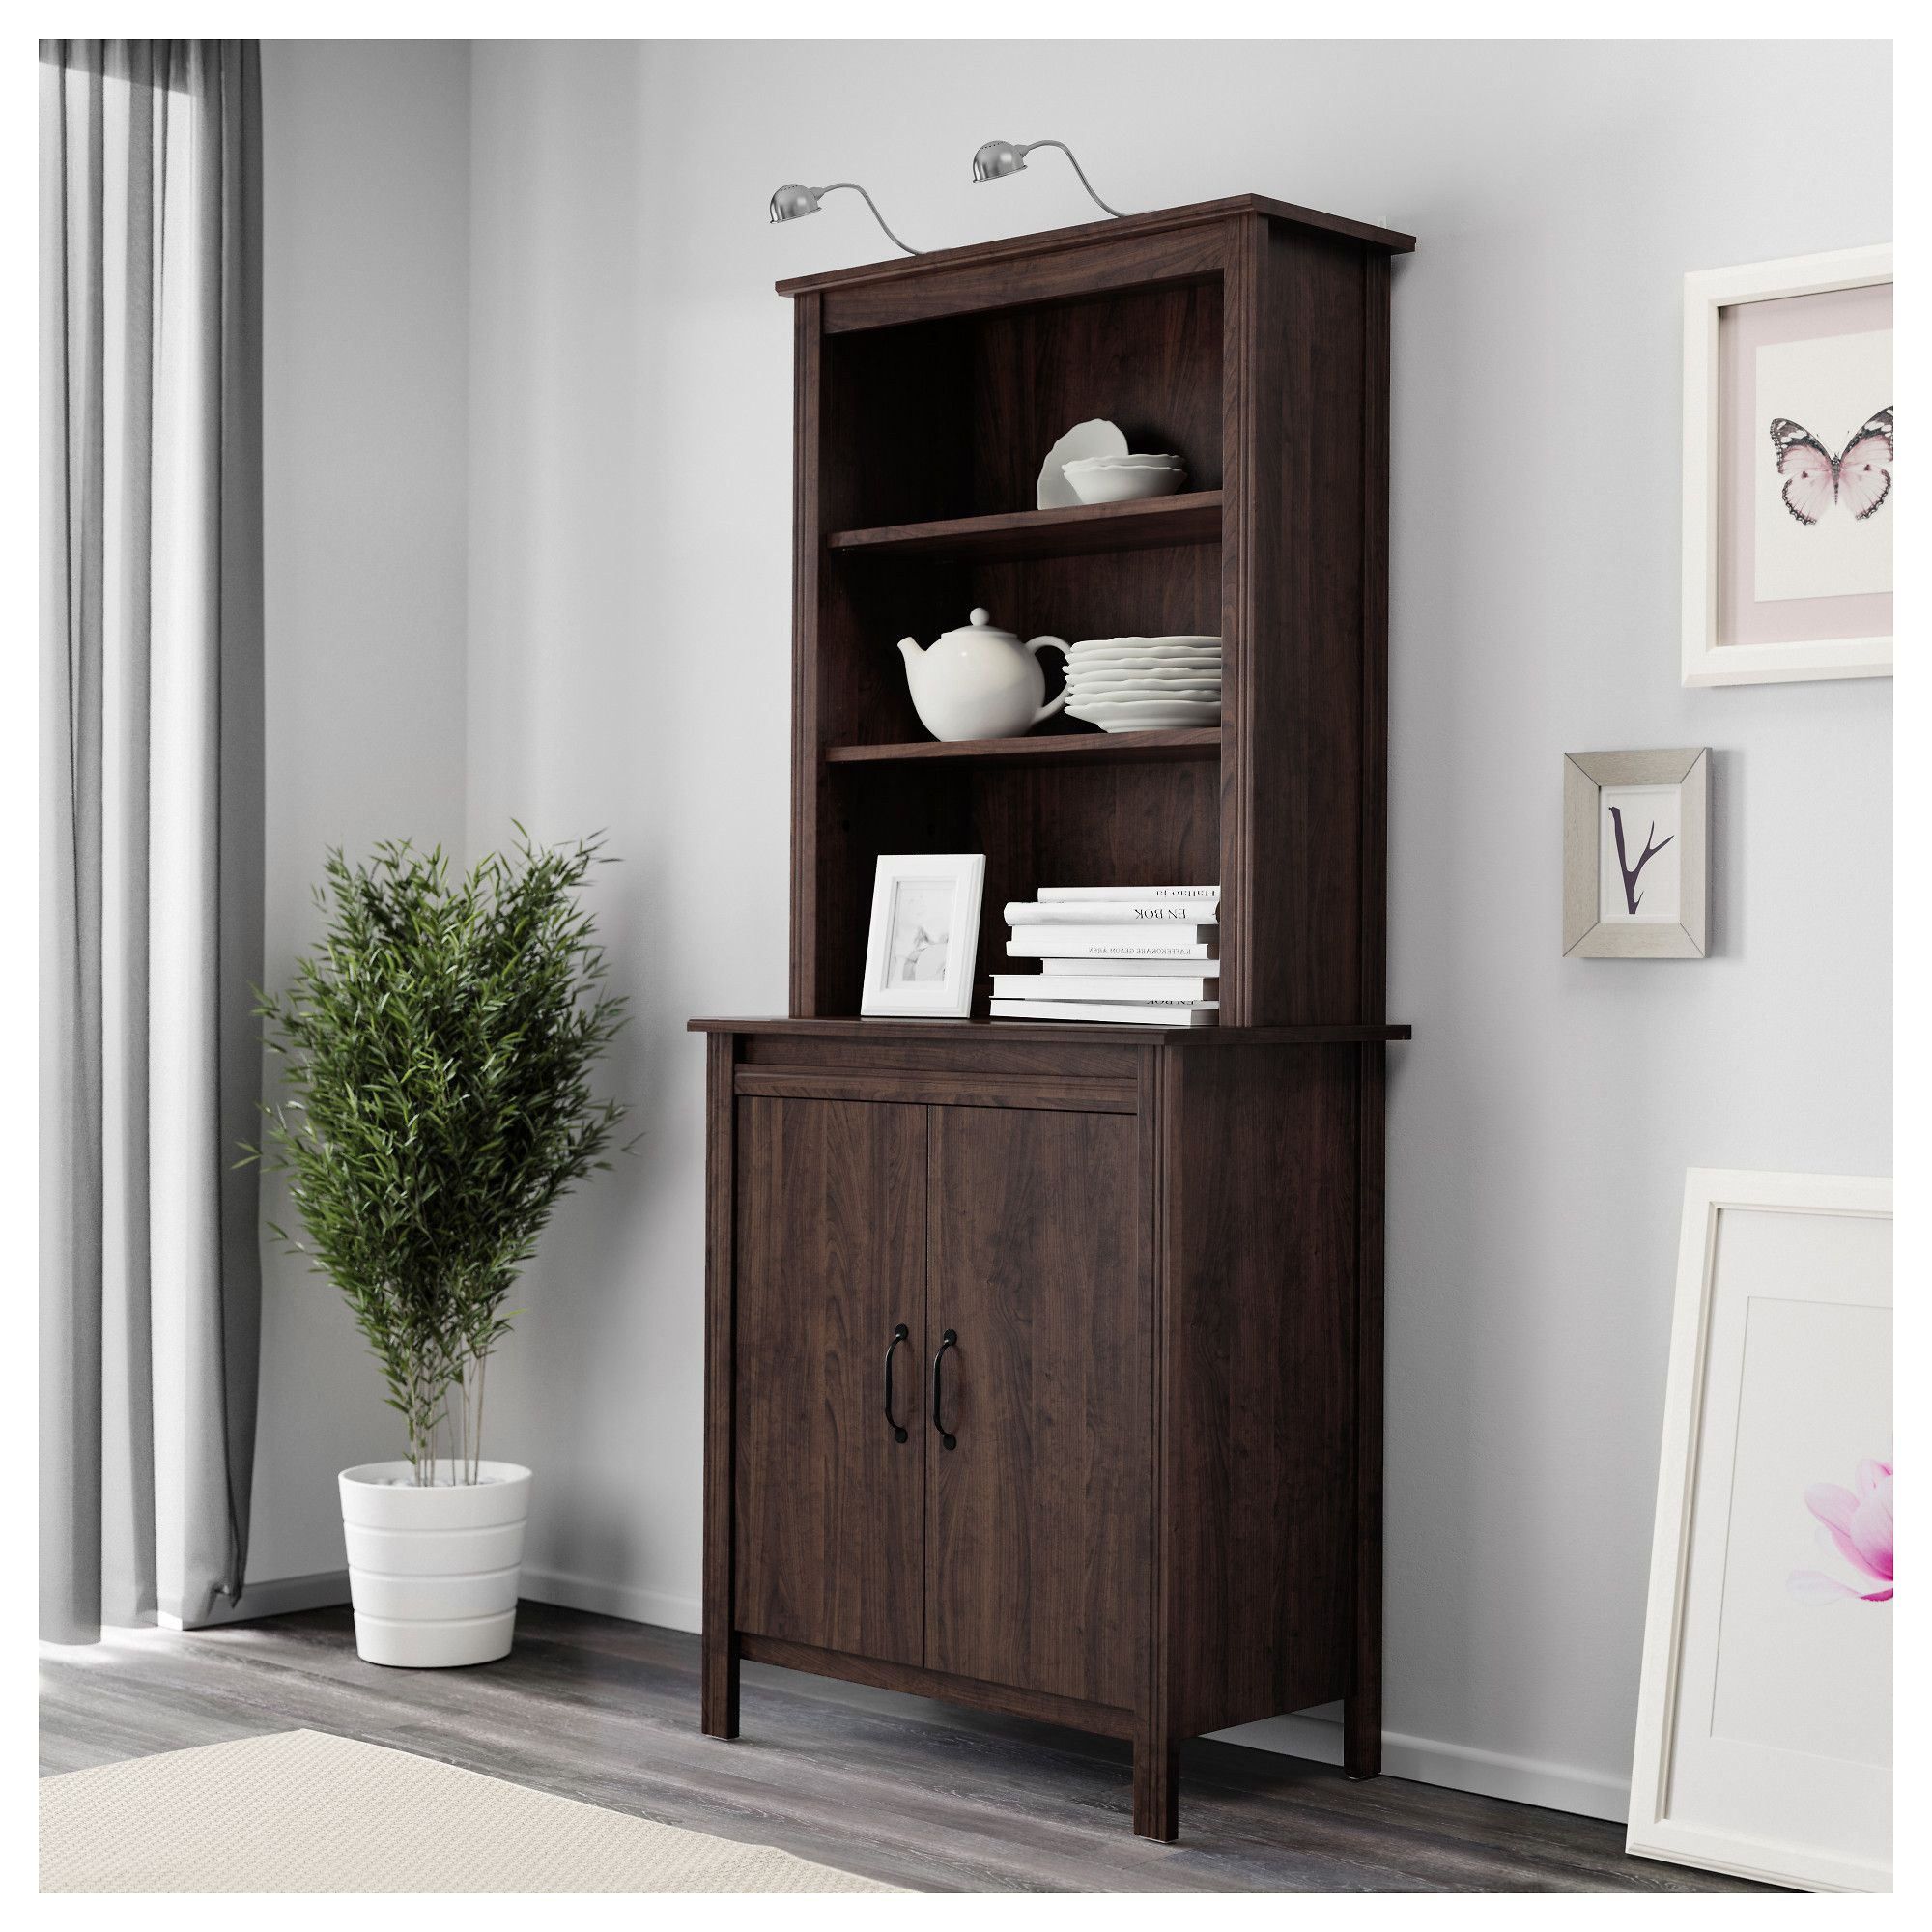 IKEA BRUSALI high cabinet with door Adjustable shelves, so you can  customise your storage as